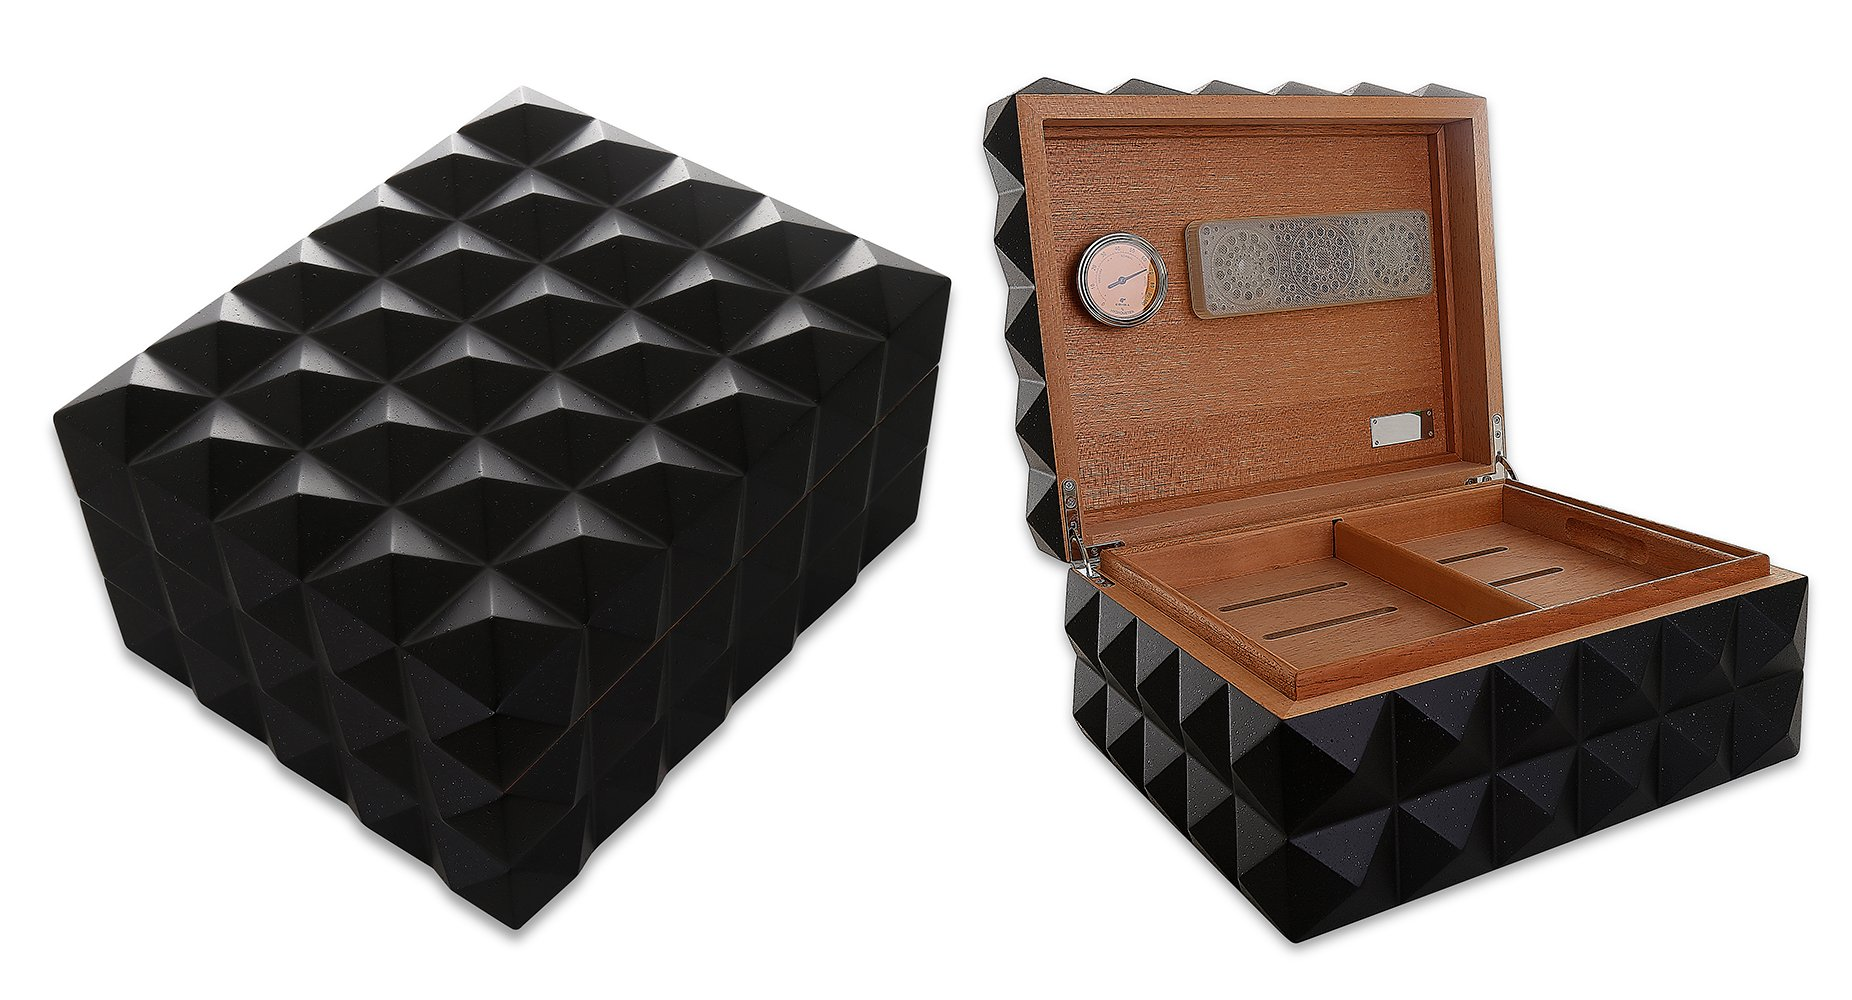 Capo Lily Cigar Humidor Case with Humidifier and Hygrometer, Black Galaxy, Spanish Cedar Wood (Holds Up to 100-125 Cigars)